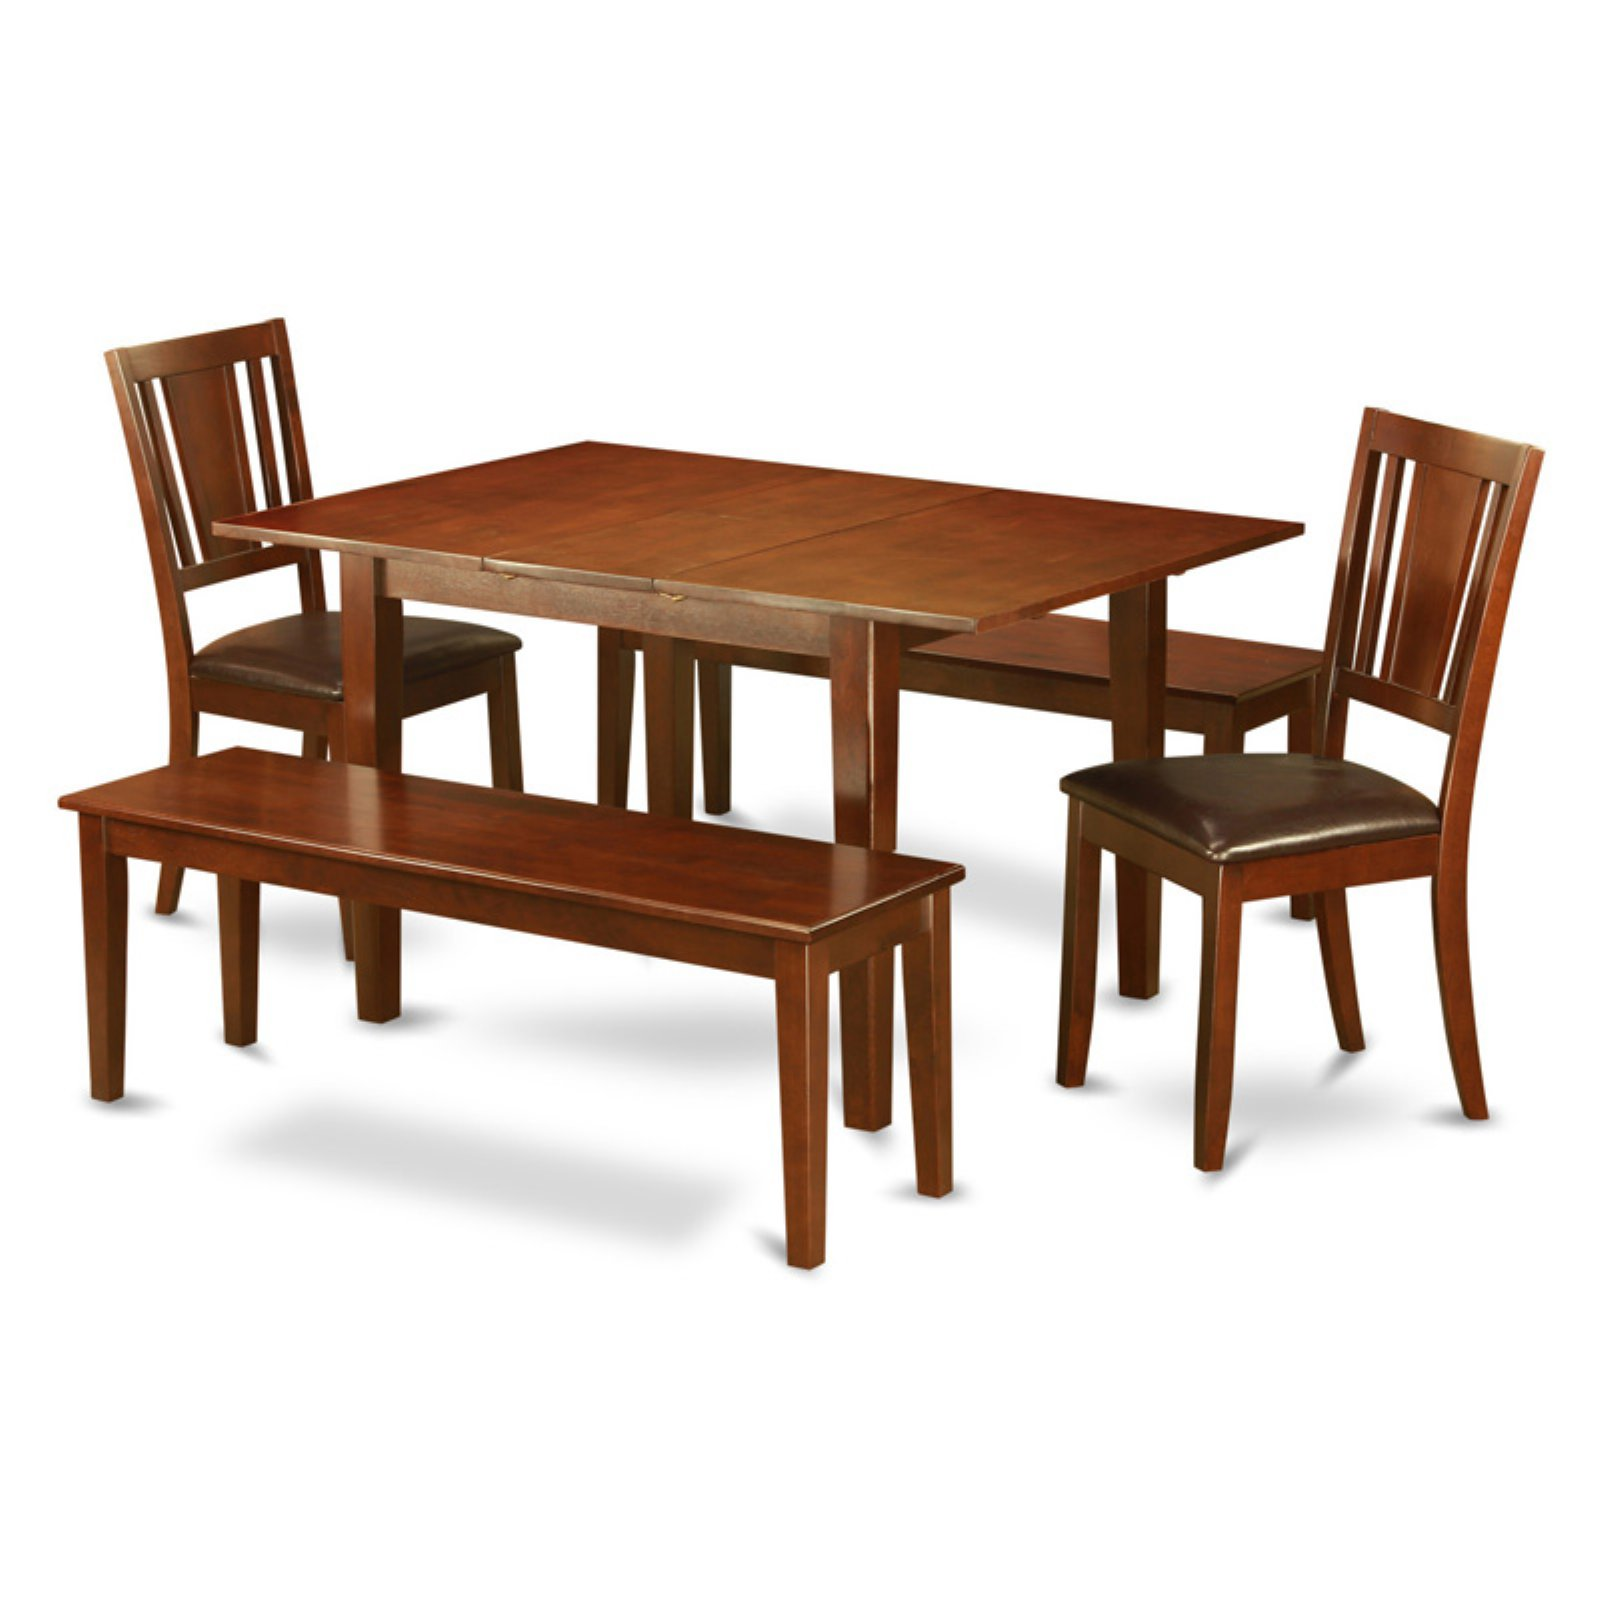 East West Furniture Picasso 5 Piece Scotch Art Dining Table Set with 2 Benches